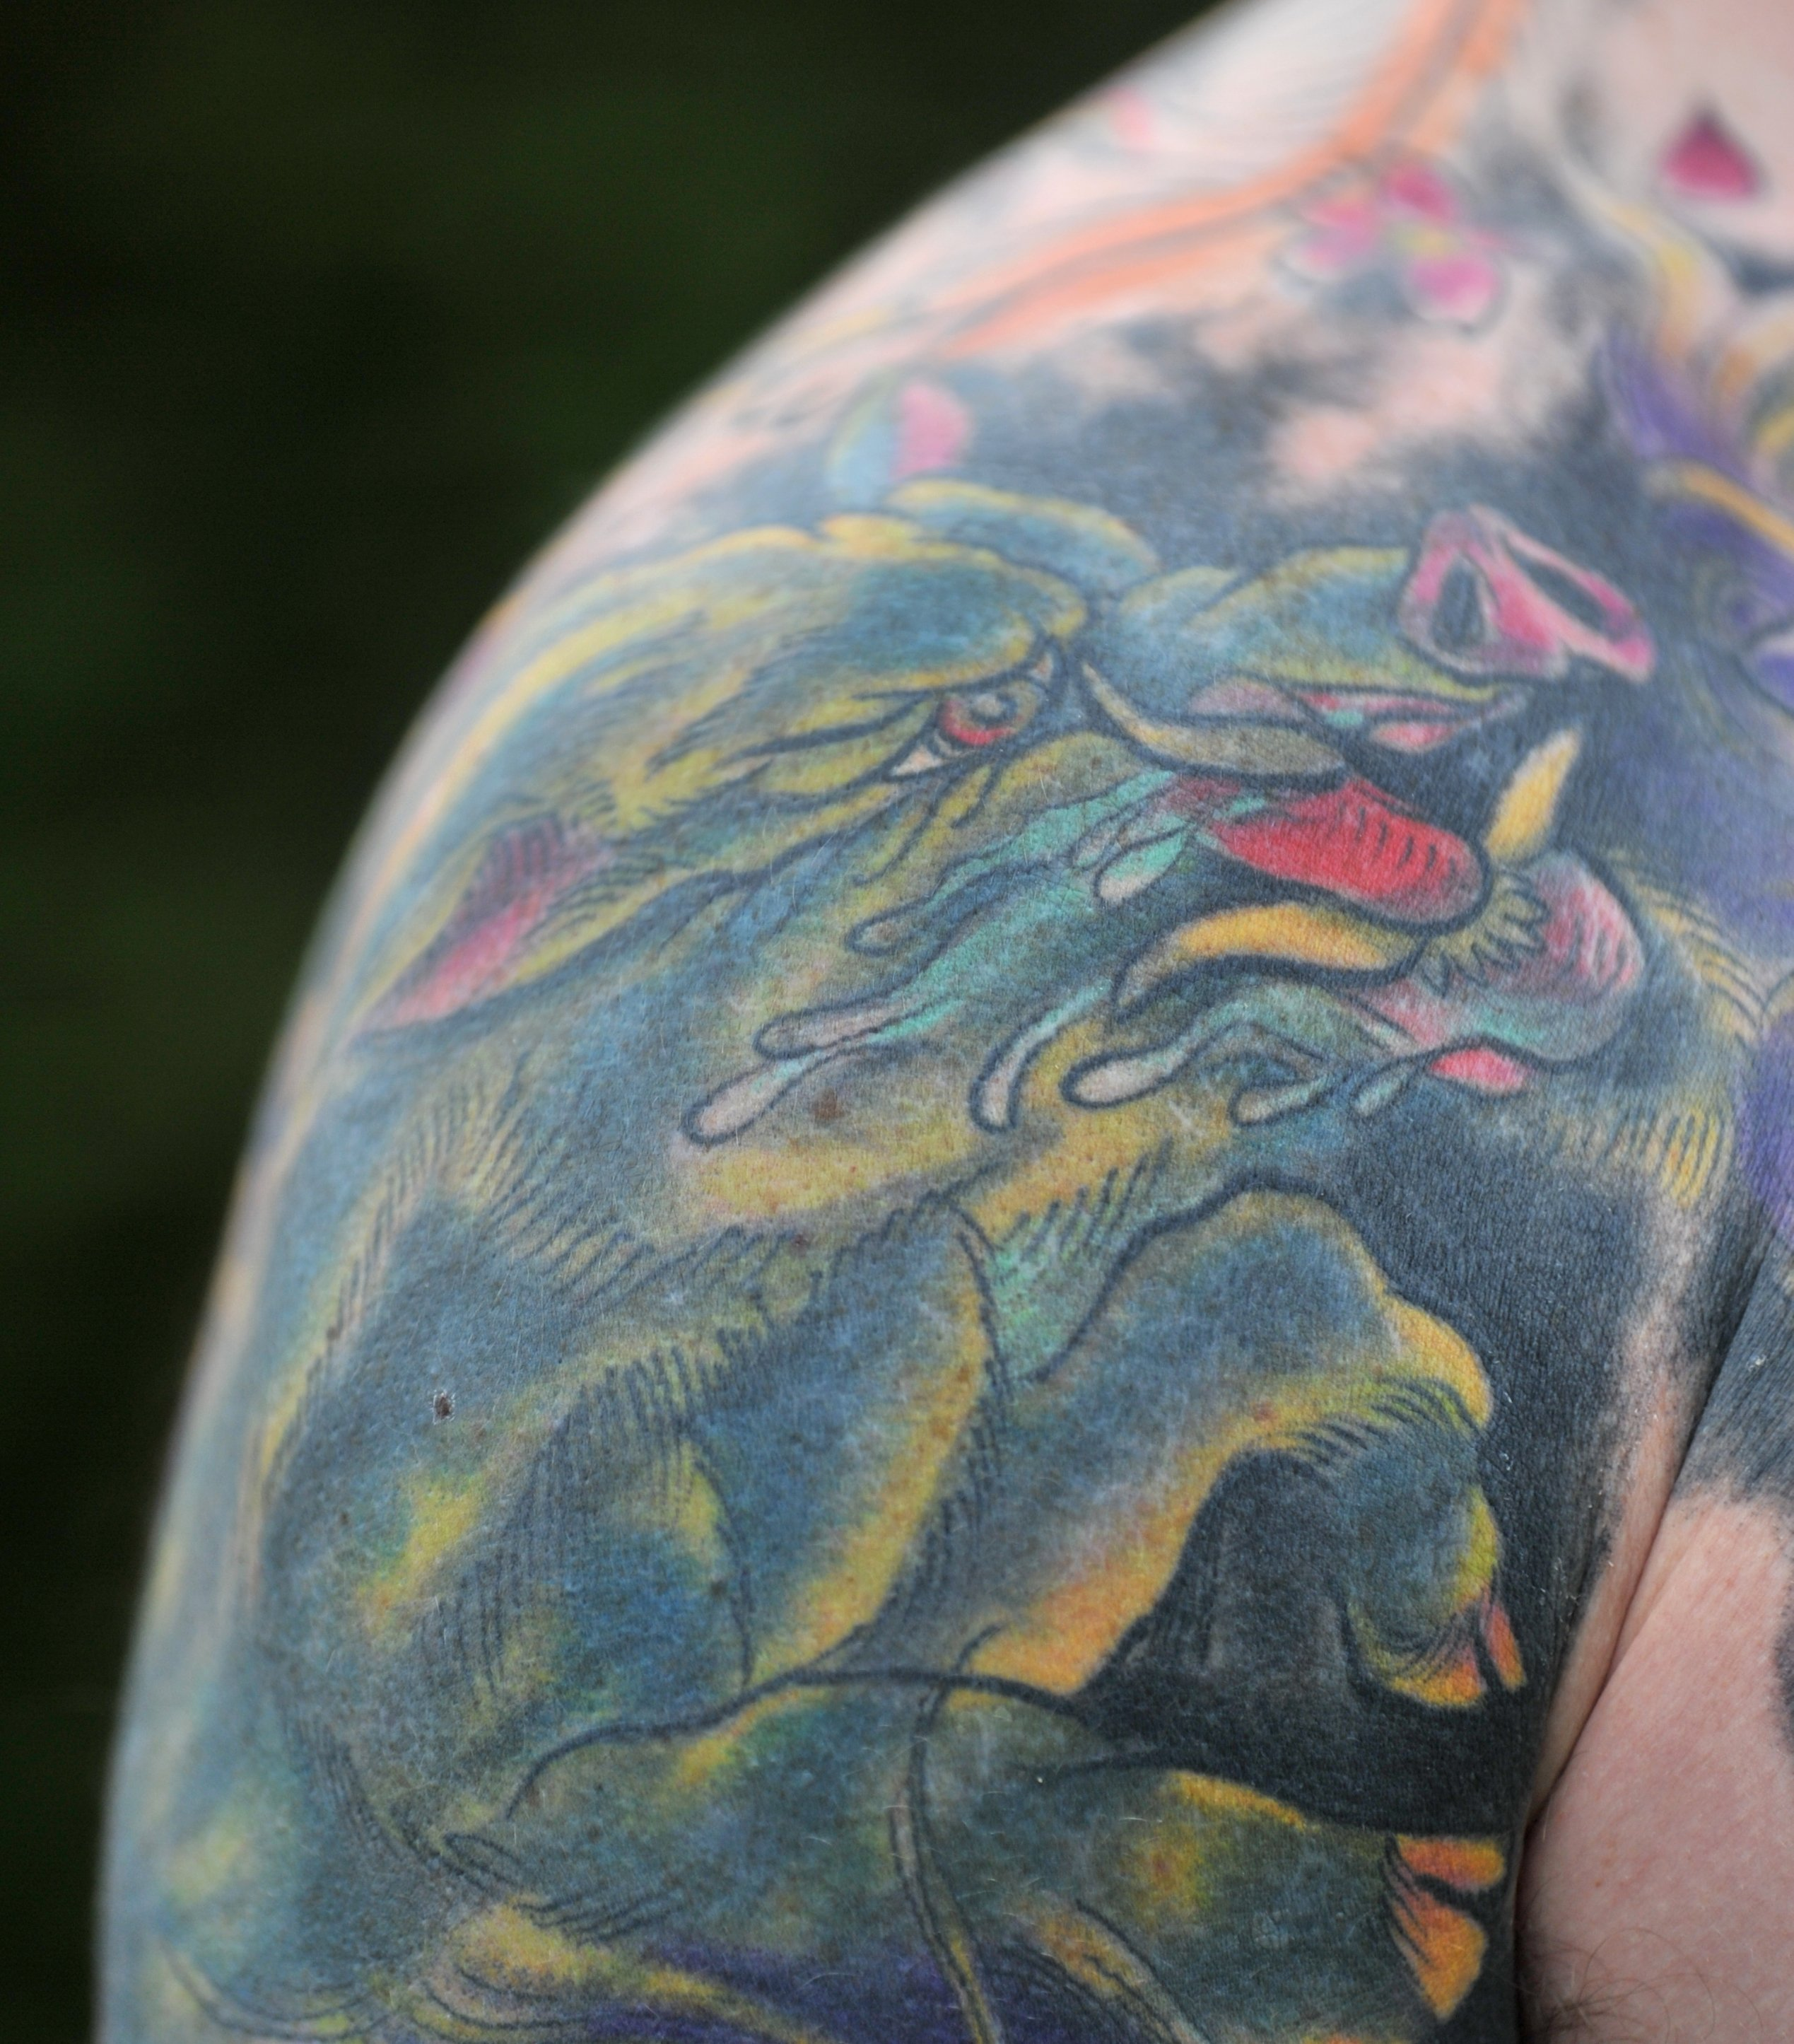 His tattoos represent his family and, with his wife being Vietnamese, the work had an oriental aspect to it. Photo: Christine O'Connor